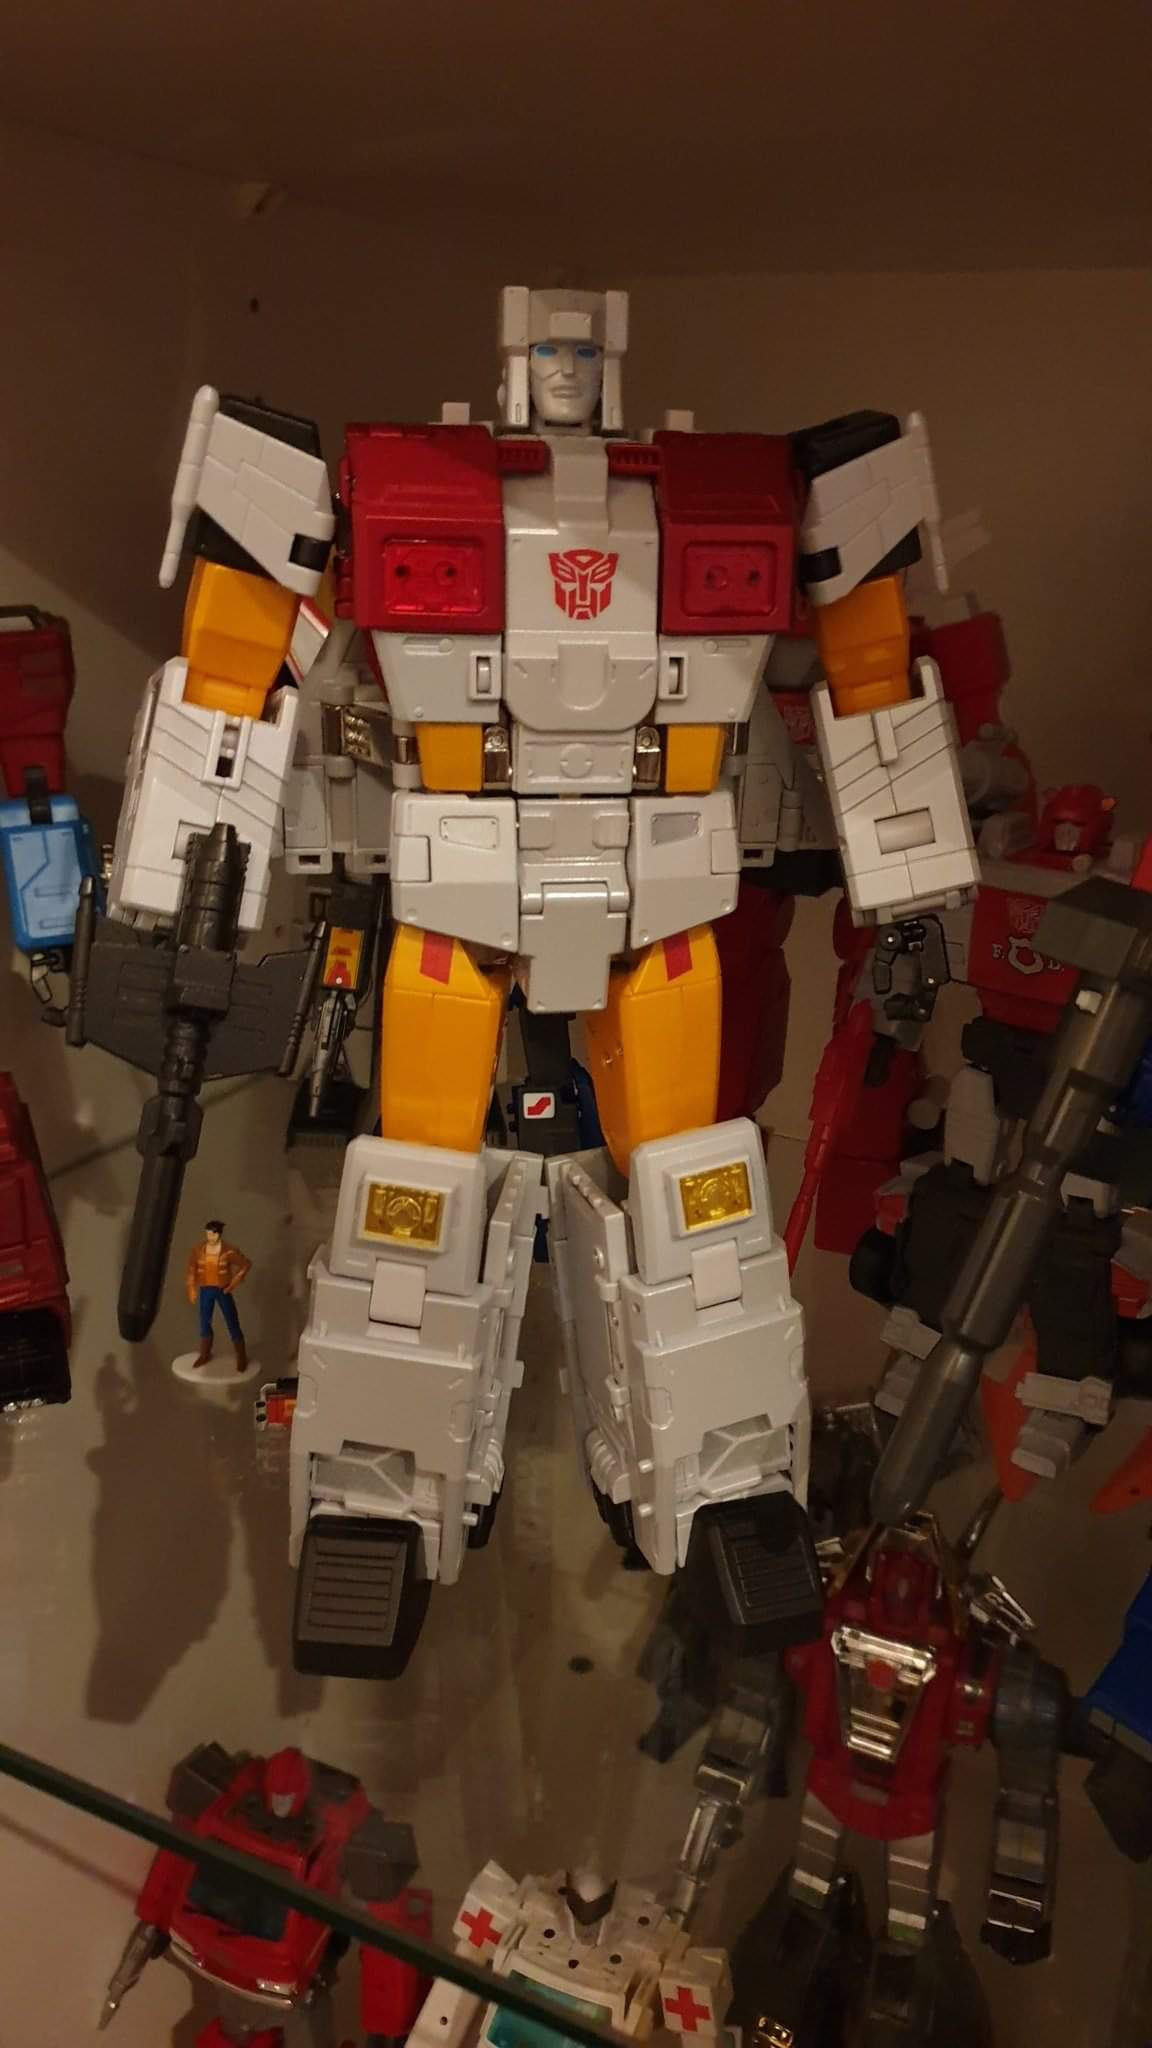 [Fanstoys] Produit Tiers - Jouet FT-30 Ethereaon (FT-30A à FT-30E) - aka Superion - Page 2 IH9SIF4H_o